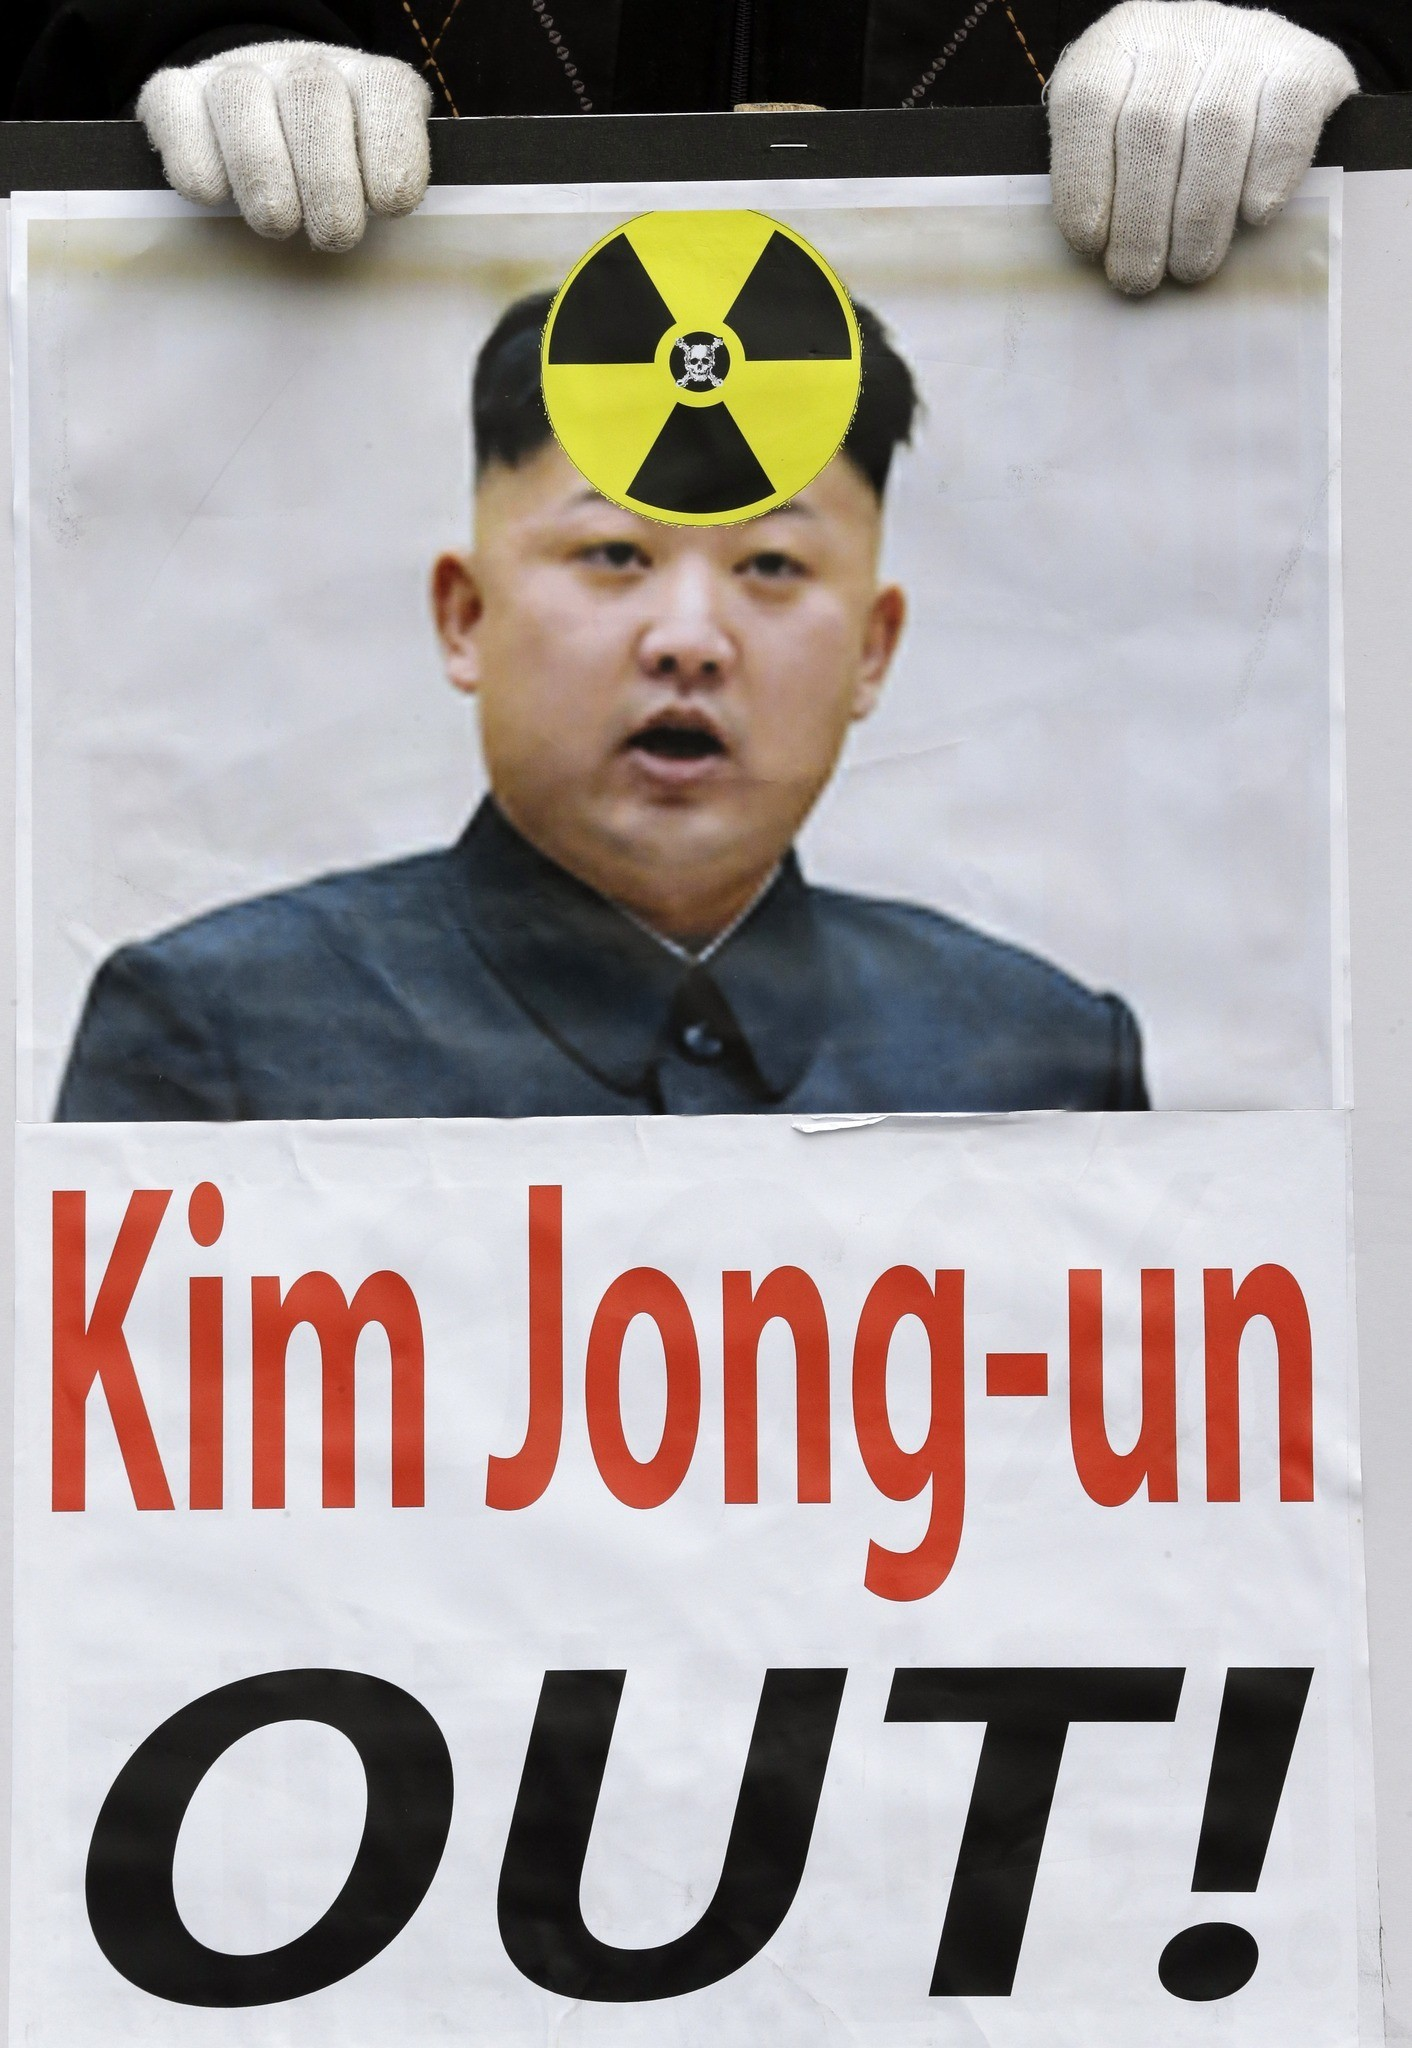 North Korea tests nuclear device - Poster